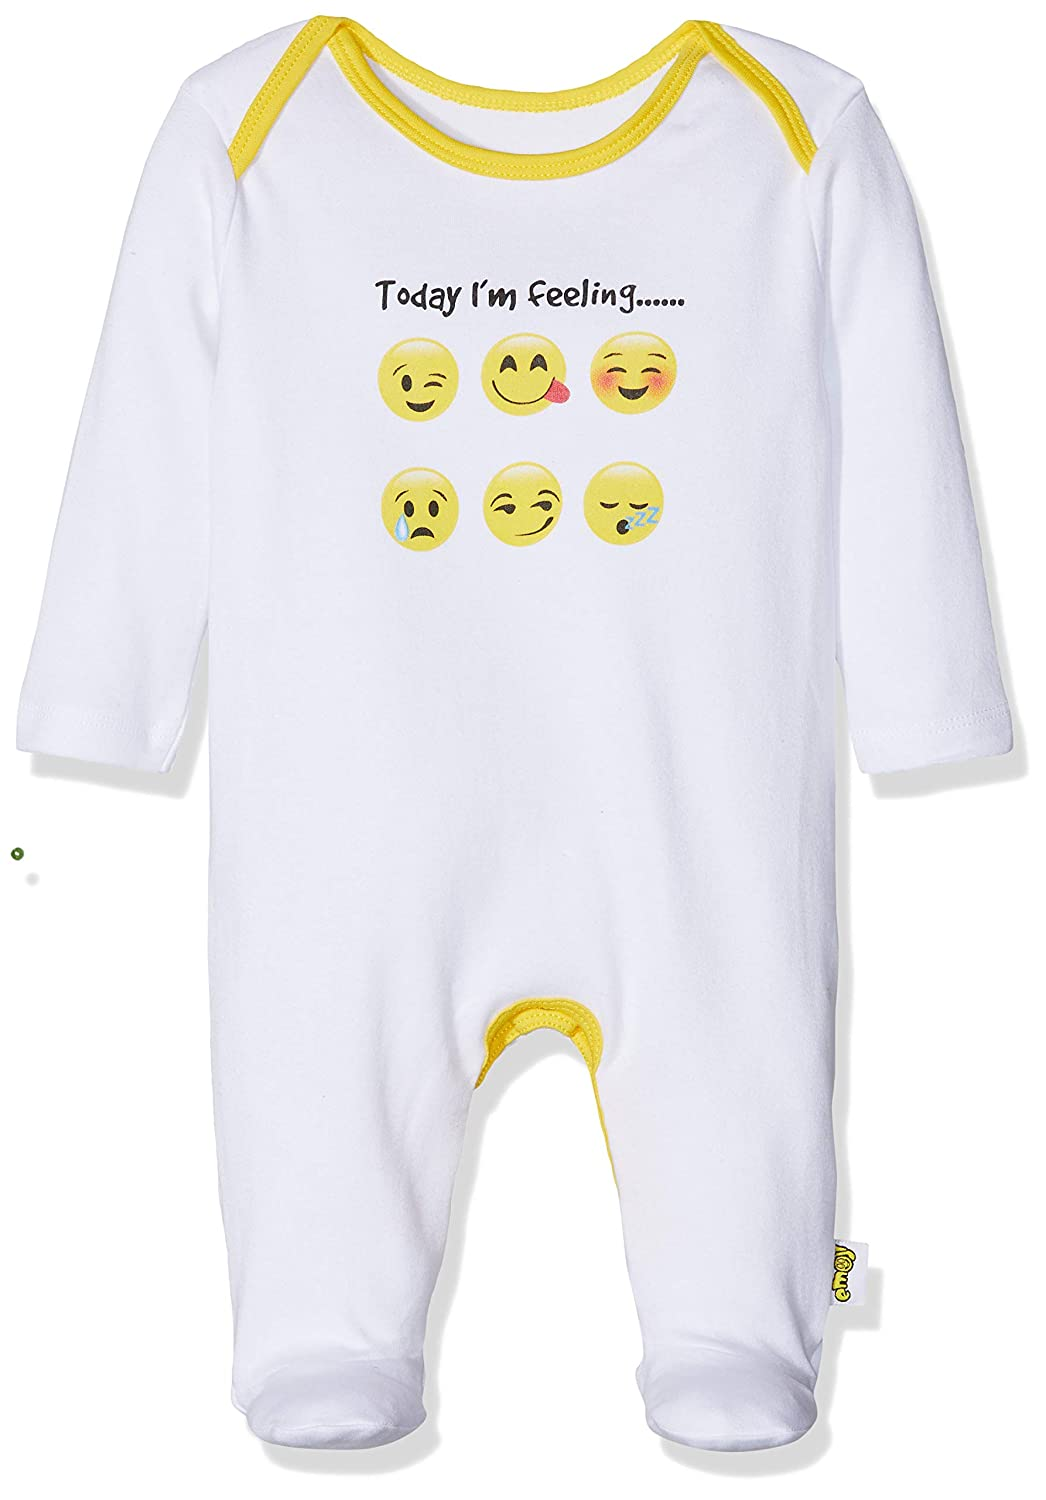 Emoji Baby Unisex Sleepsuit Ages 0 Months to 18 Years